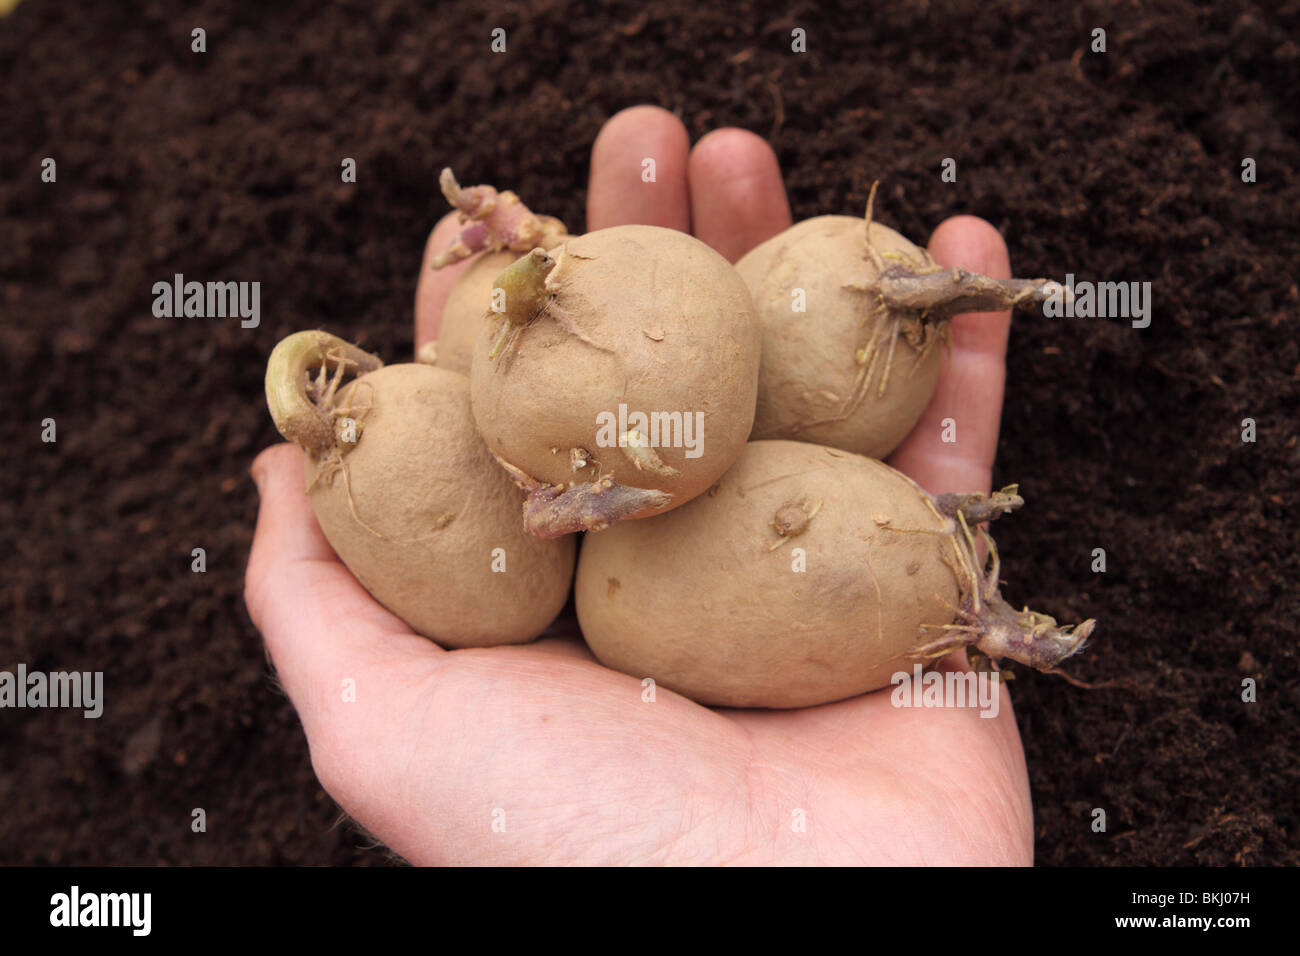 Planting seed potatoes variety called Nadine Stock Photo